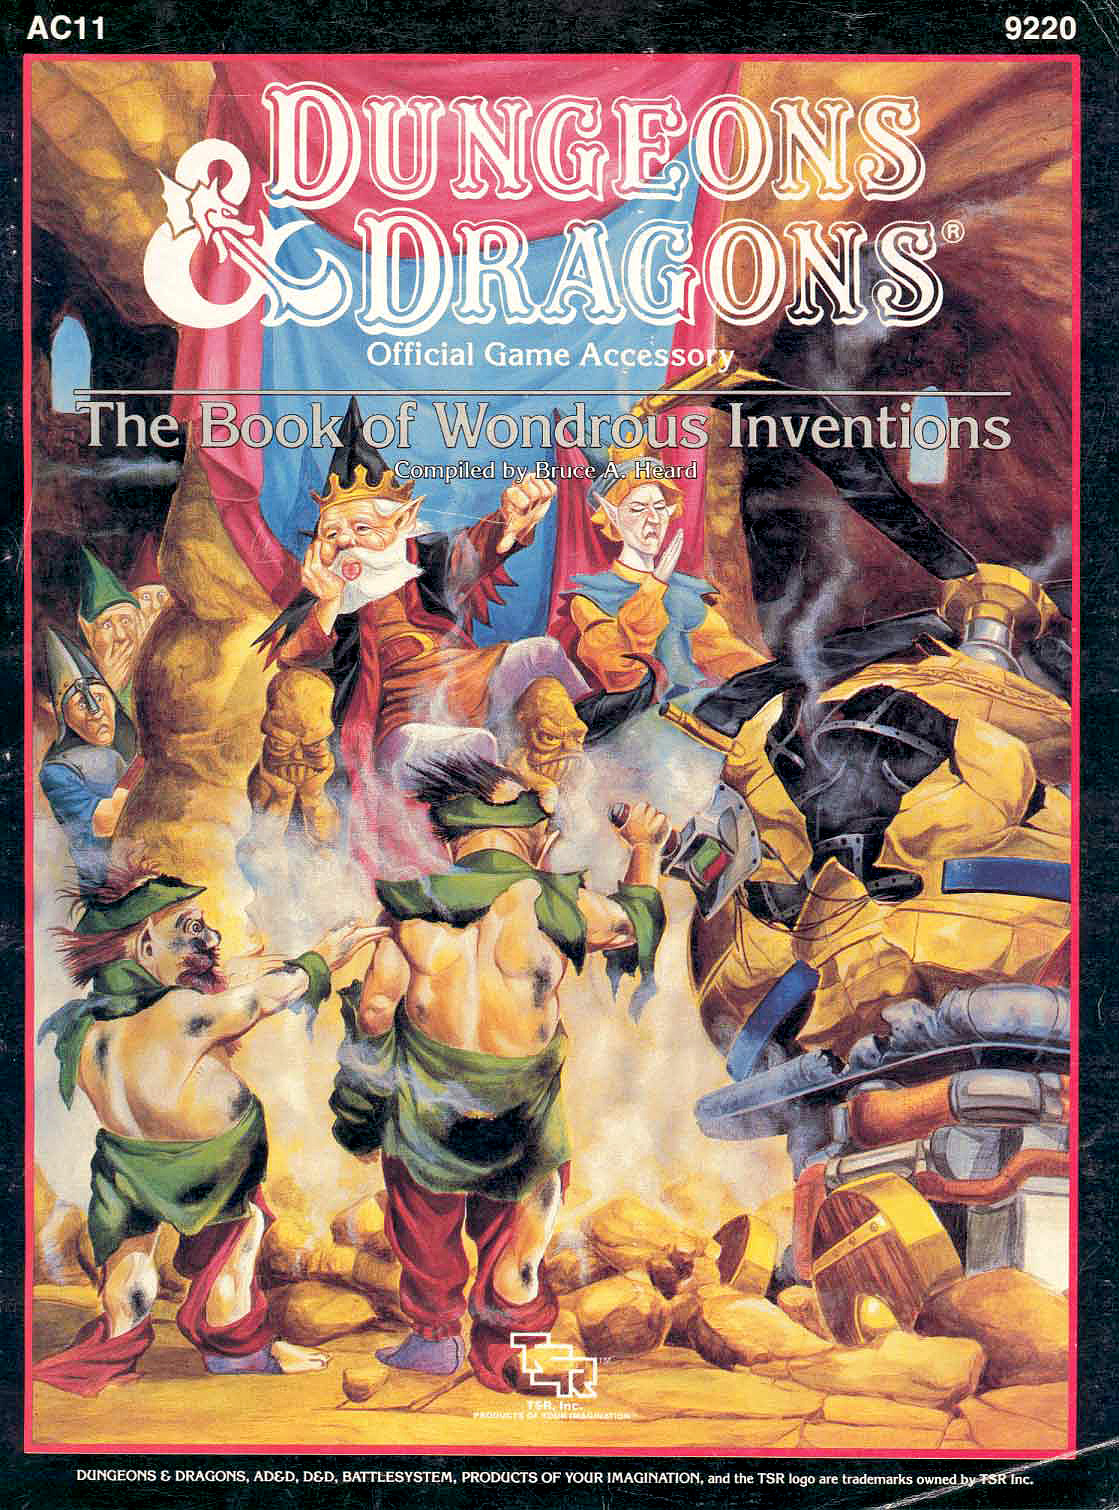 gnomes_by_Jim_Holloway-9220_%281987-12%29_TSR_D%26D_%28Mystara%29_-_The_Book_of_Wondrous_Inventions_%28AC11%29.jpg